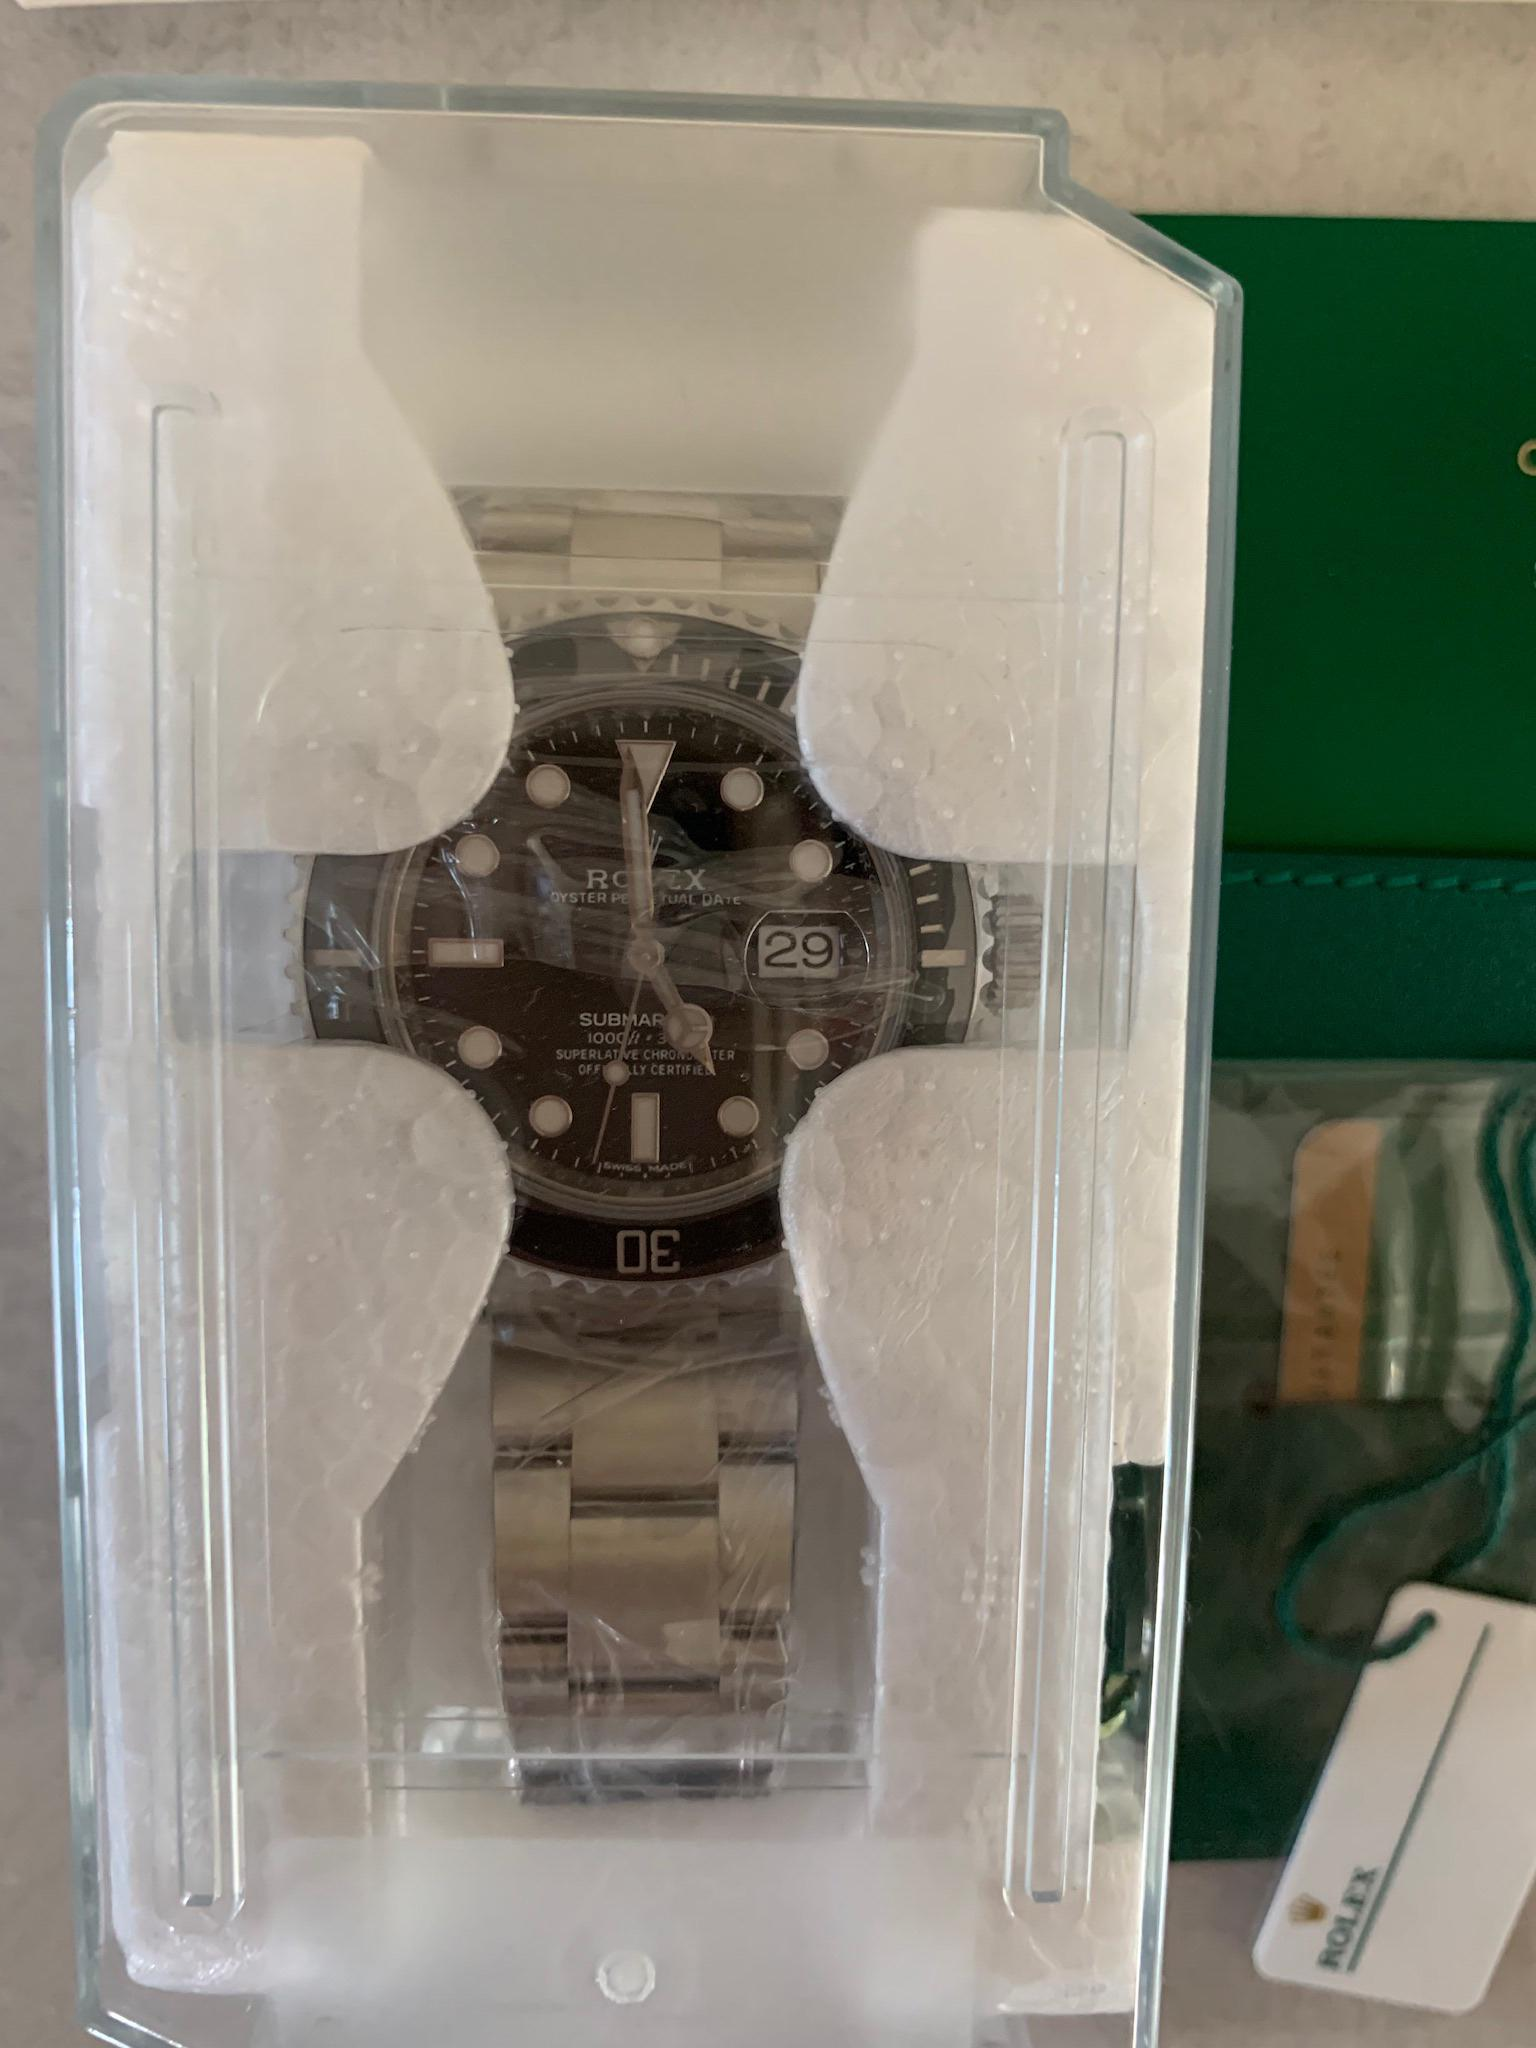 LNIB Rolex 116610LN Submariner Date Black dial stainless steel, complete set with boxes, hang tags and guarantee card (till Dec 2023)